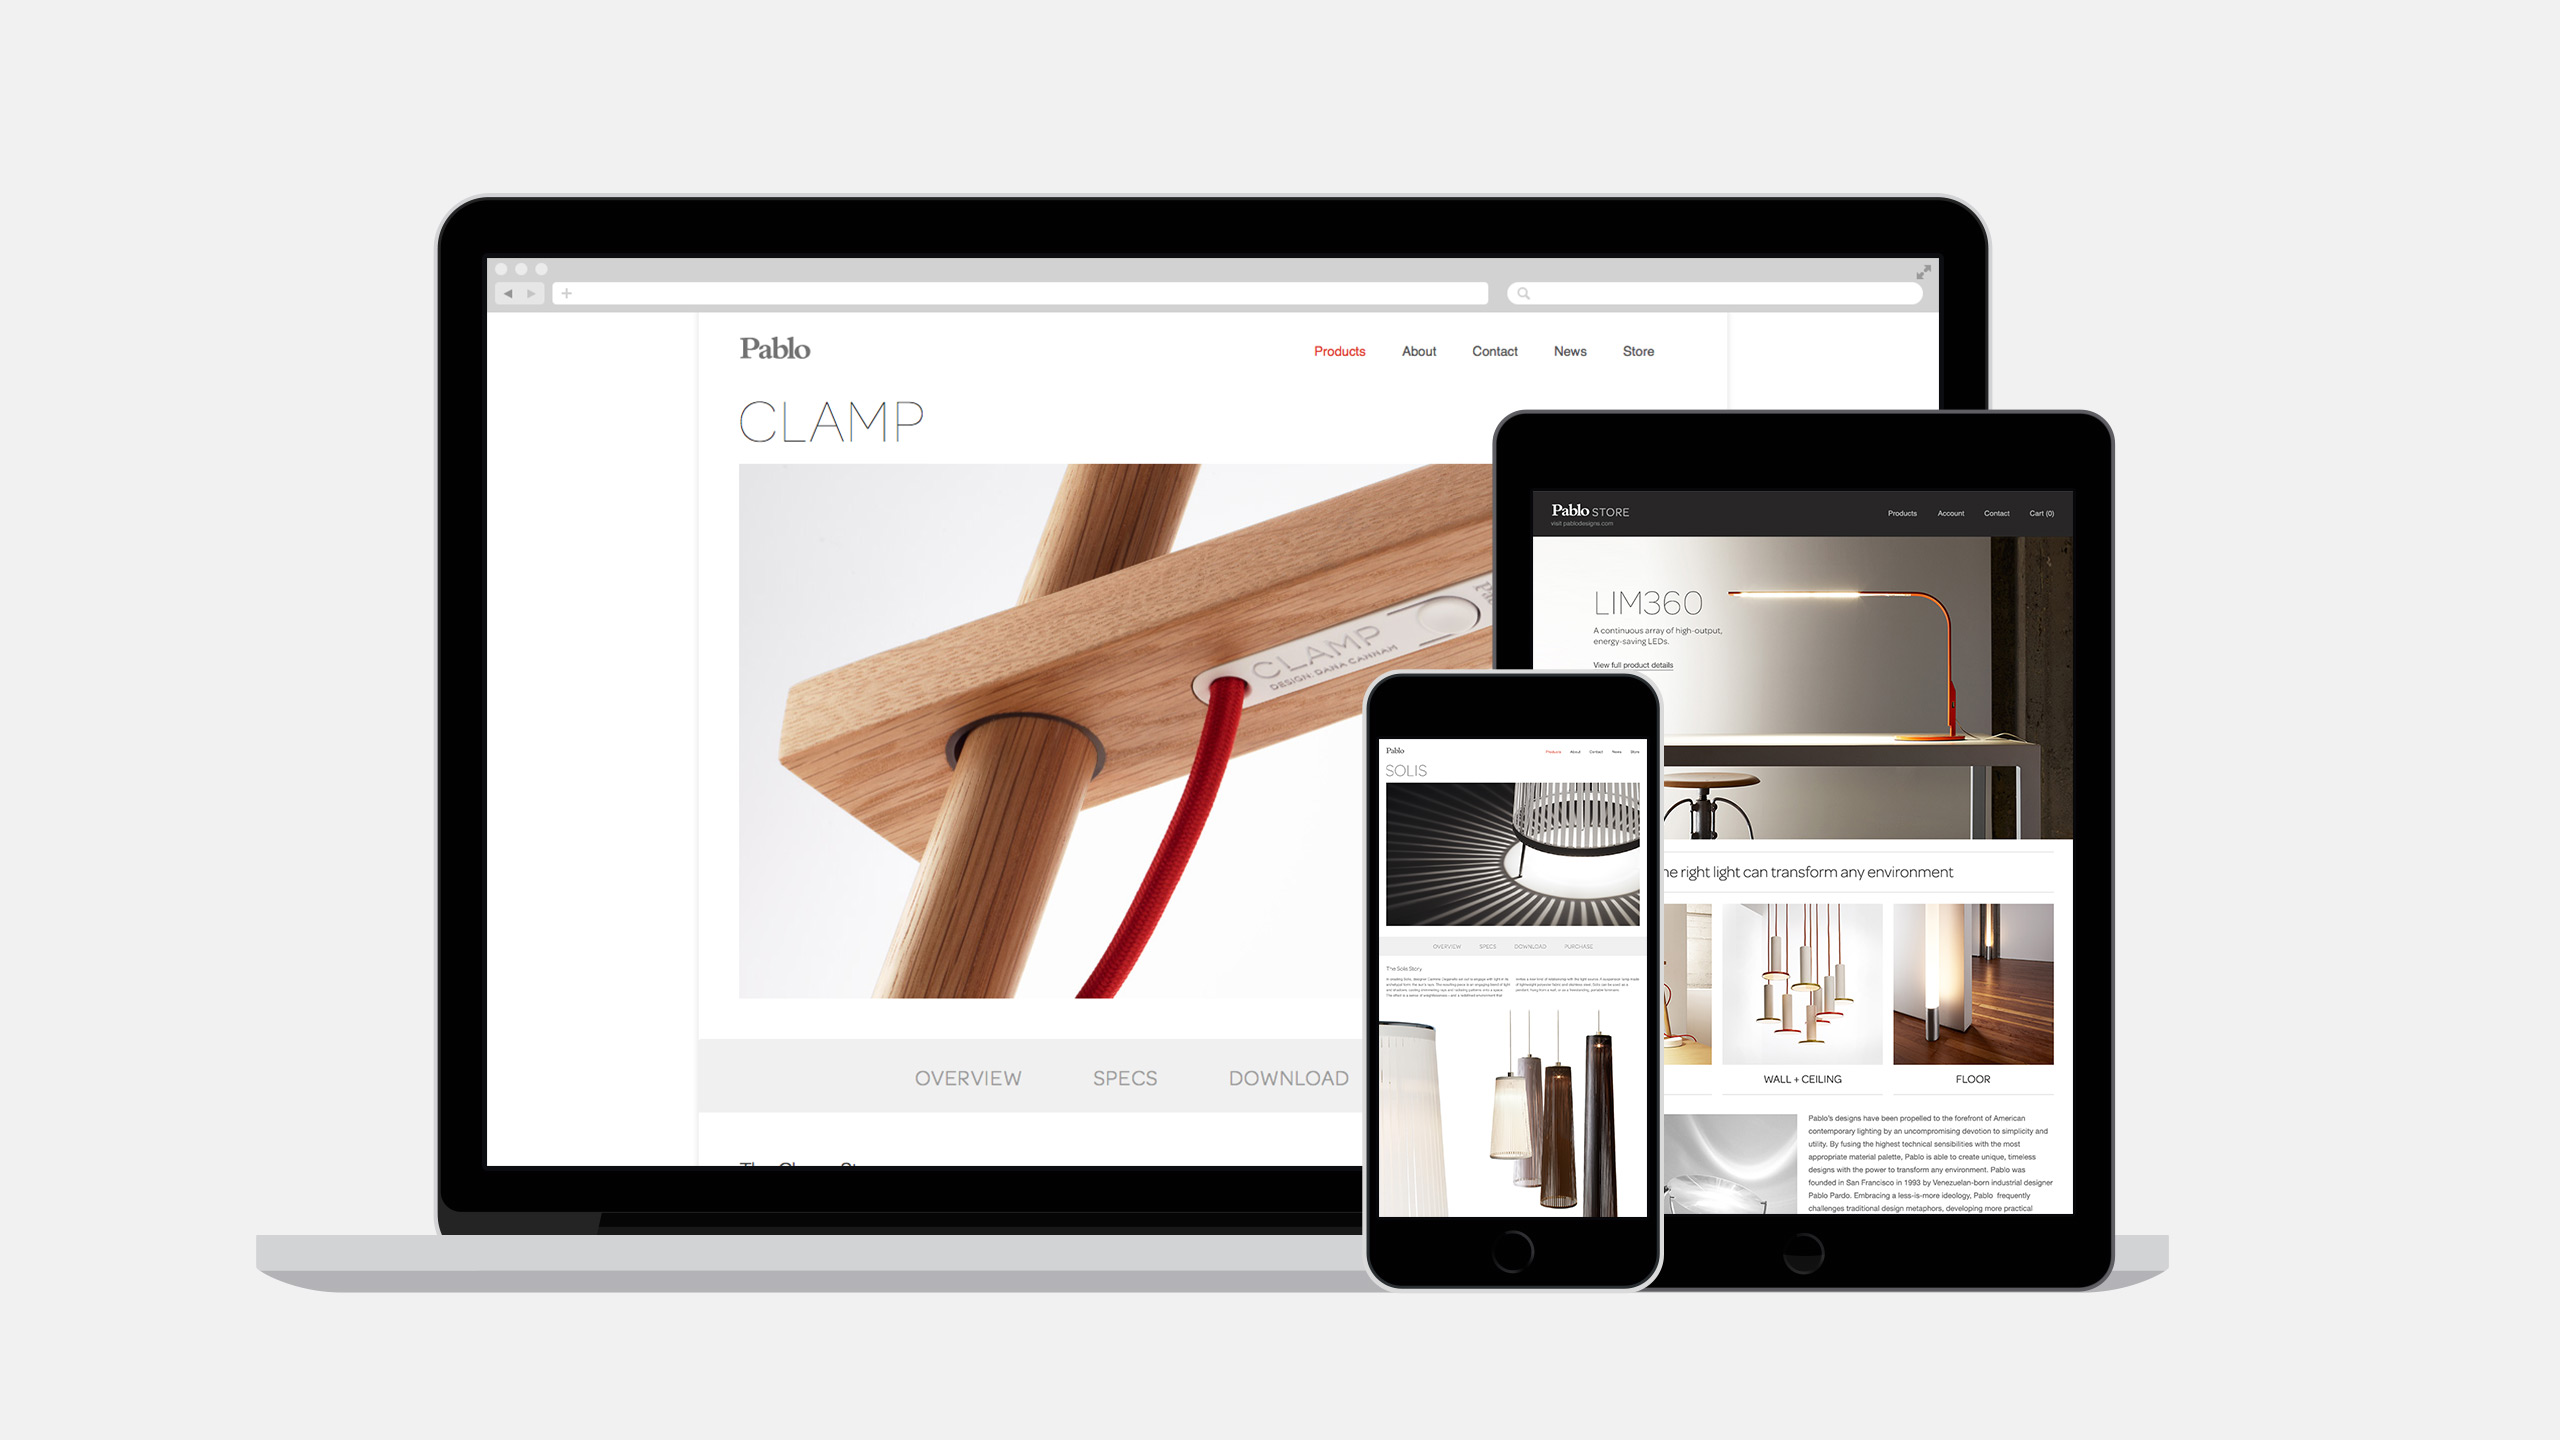 Pablo Designs Responsive Website in Device